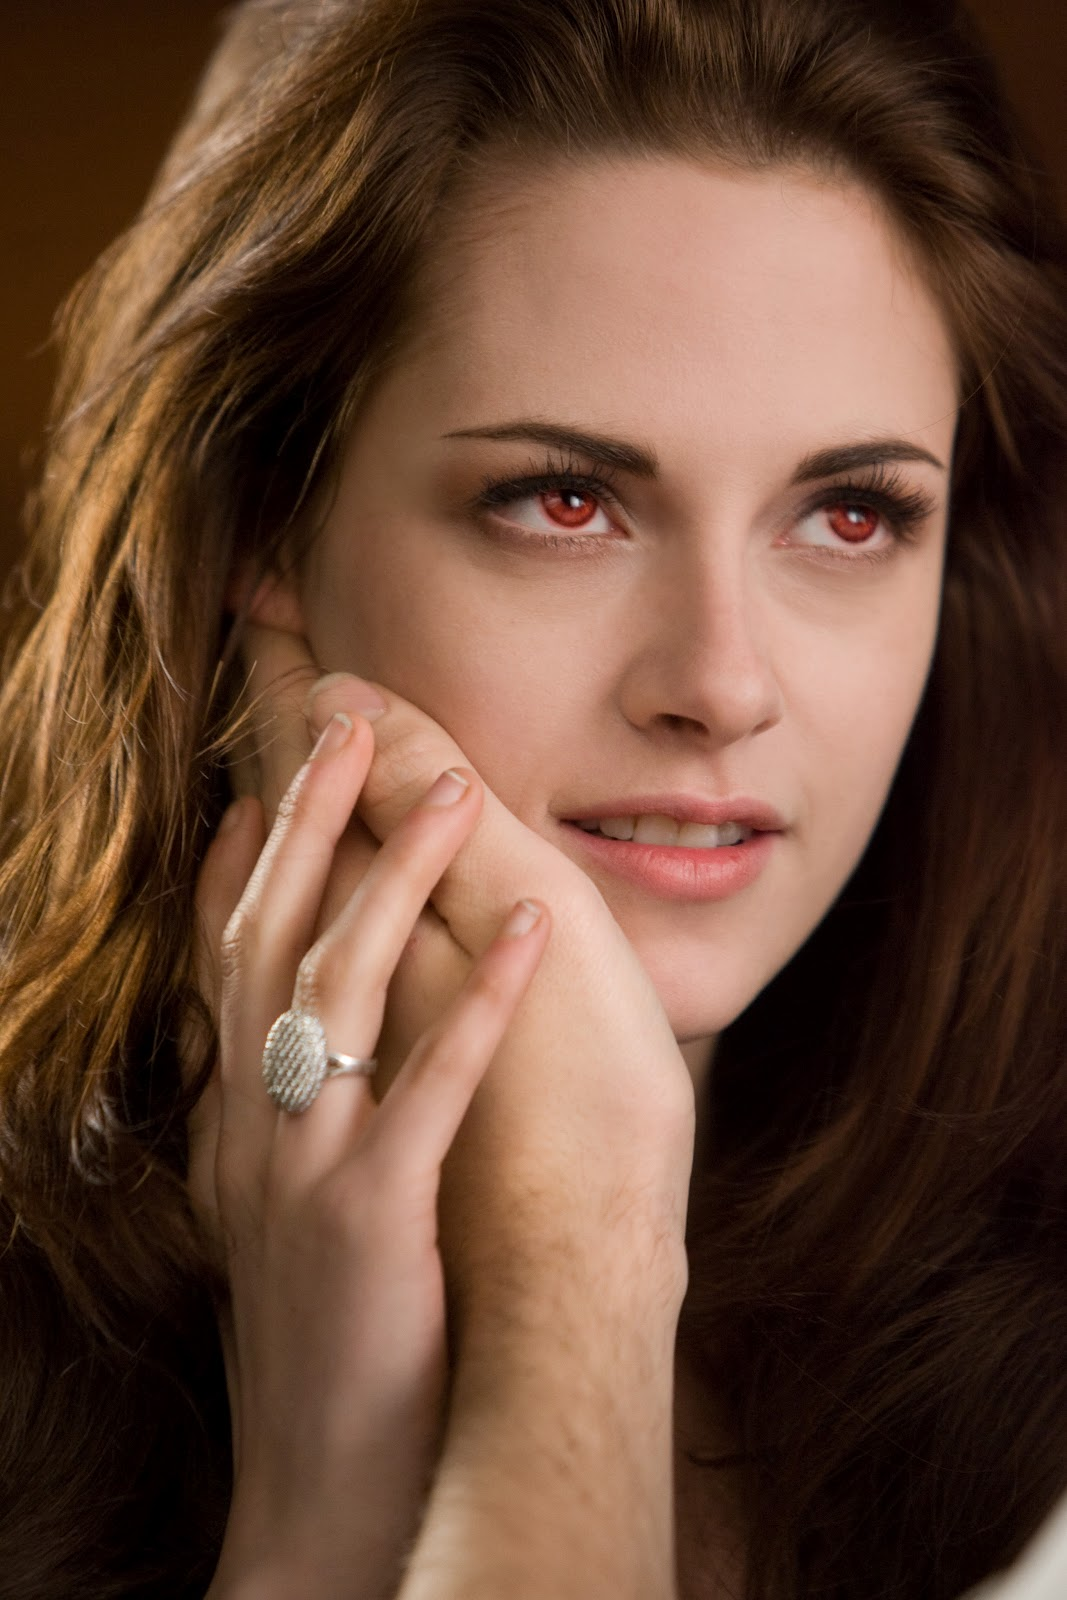 Breaking Dawn Part 2 HQ Stills - Breaking Dawn Part 2 ...